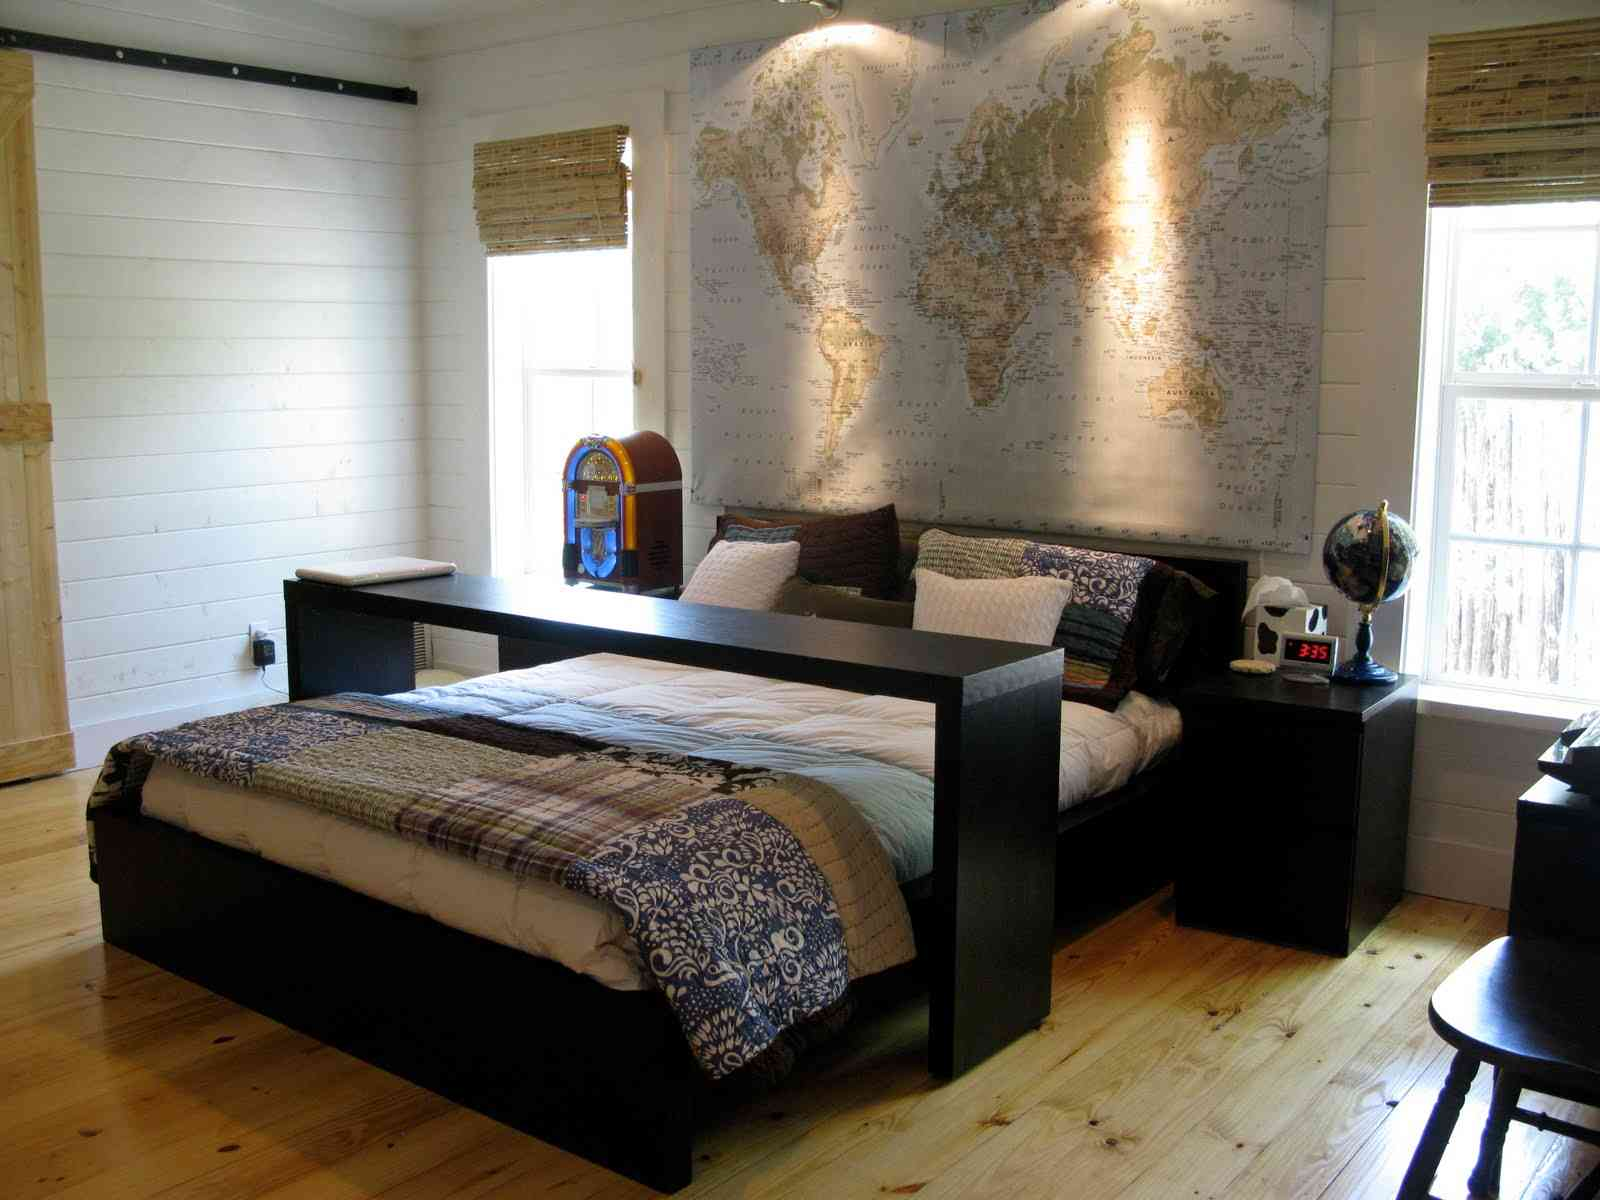 Bedroom furniture from ikea new bedroom 2015 room - Ikea bedrooms ideas ...